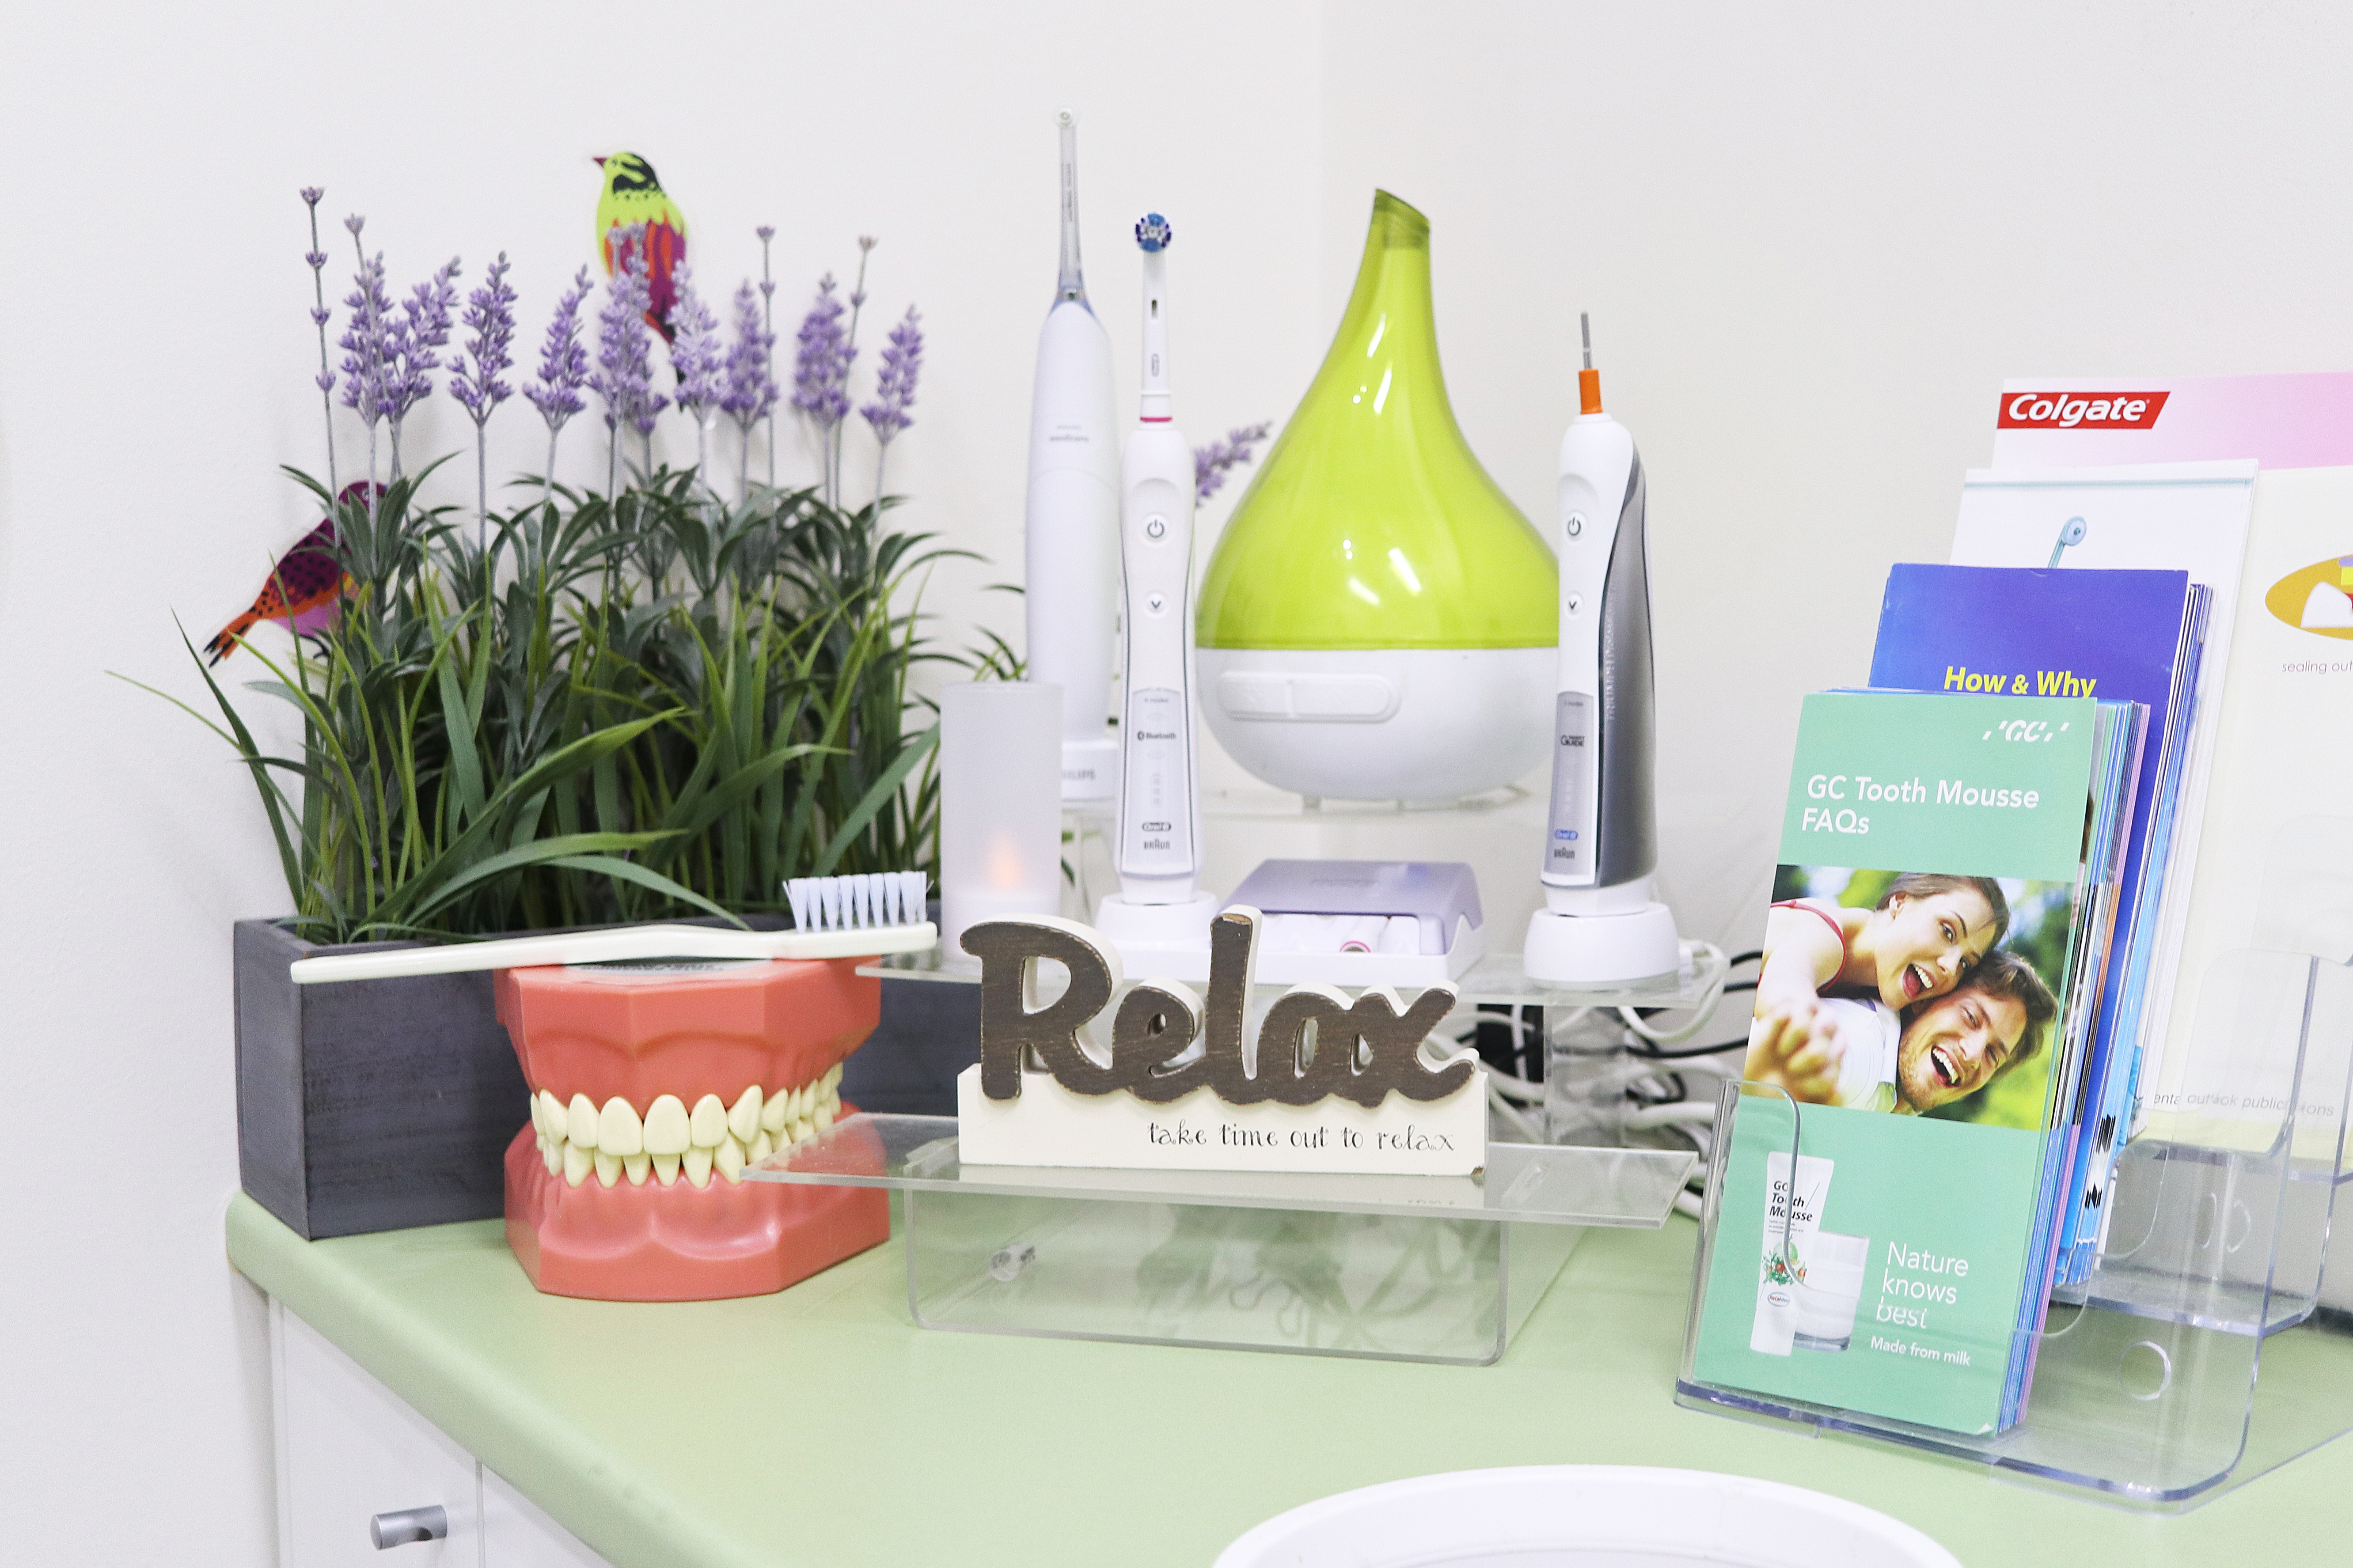 Relax at the dentist